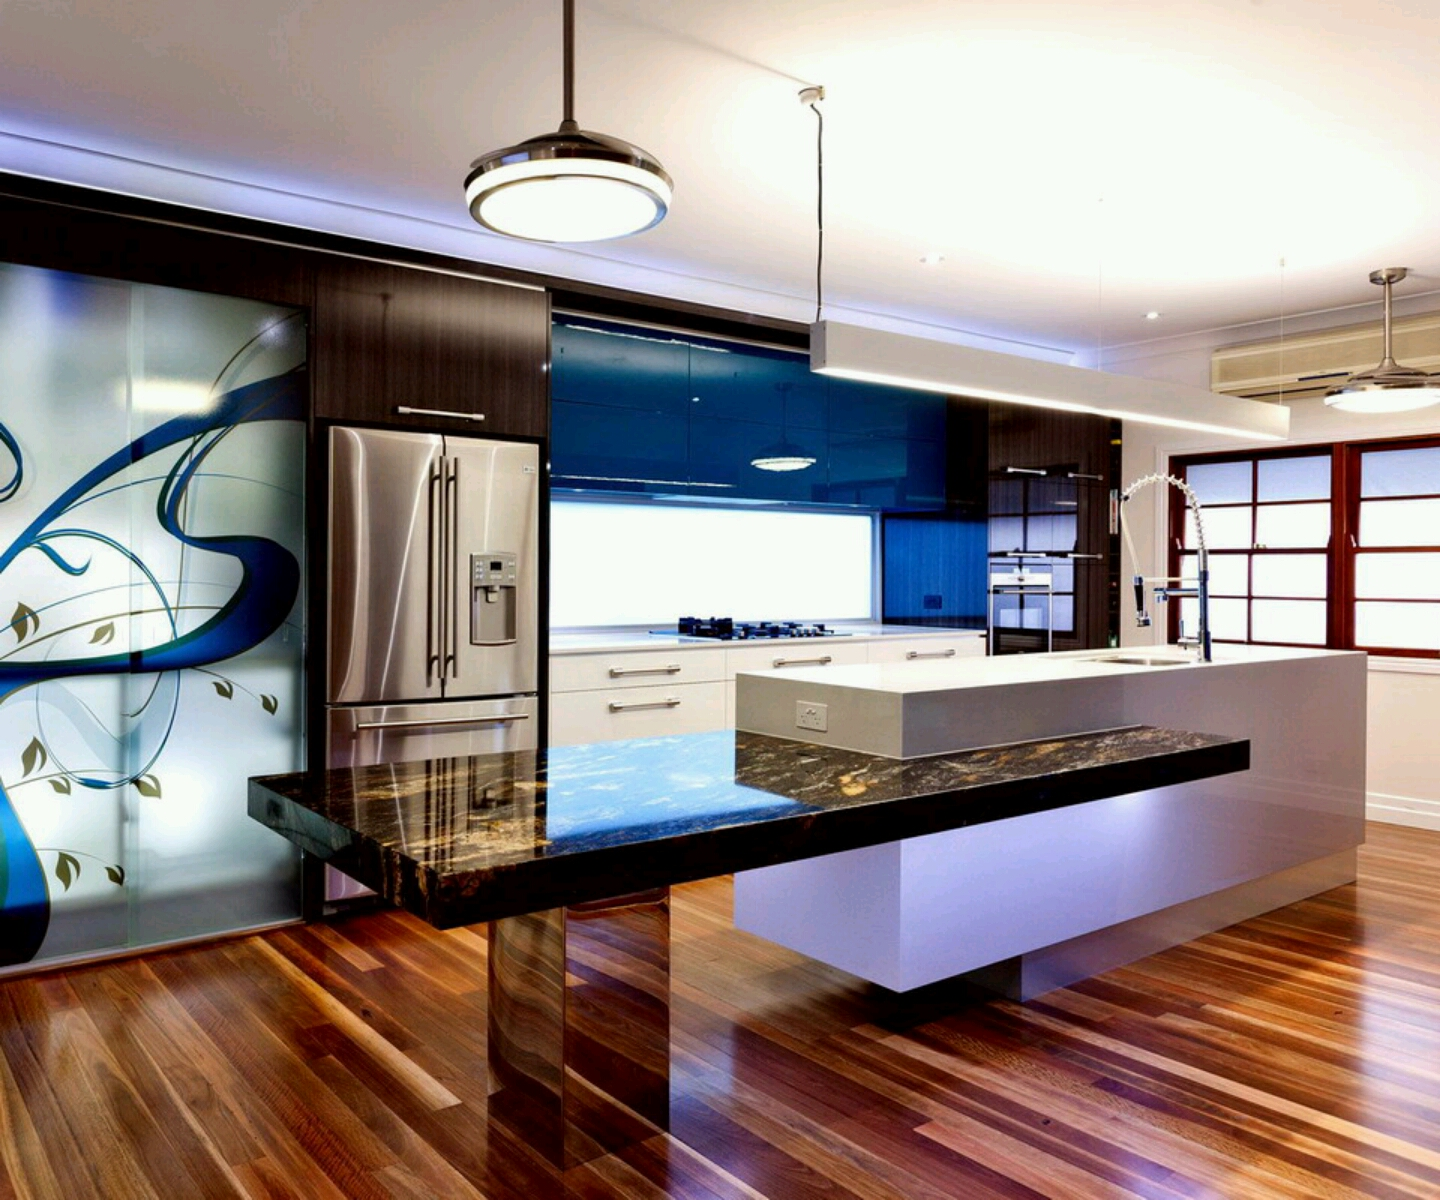 Ultra modern kitchen designs ideas new home designs for Latest kitchen design ideas